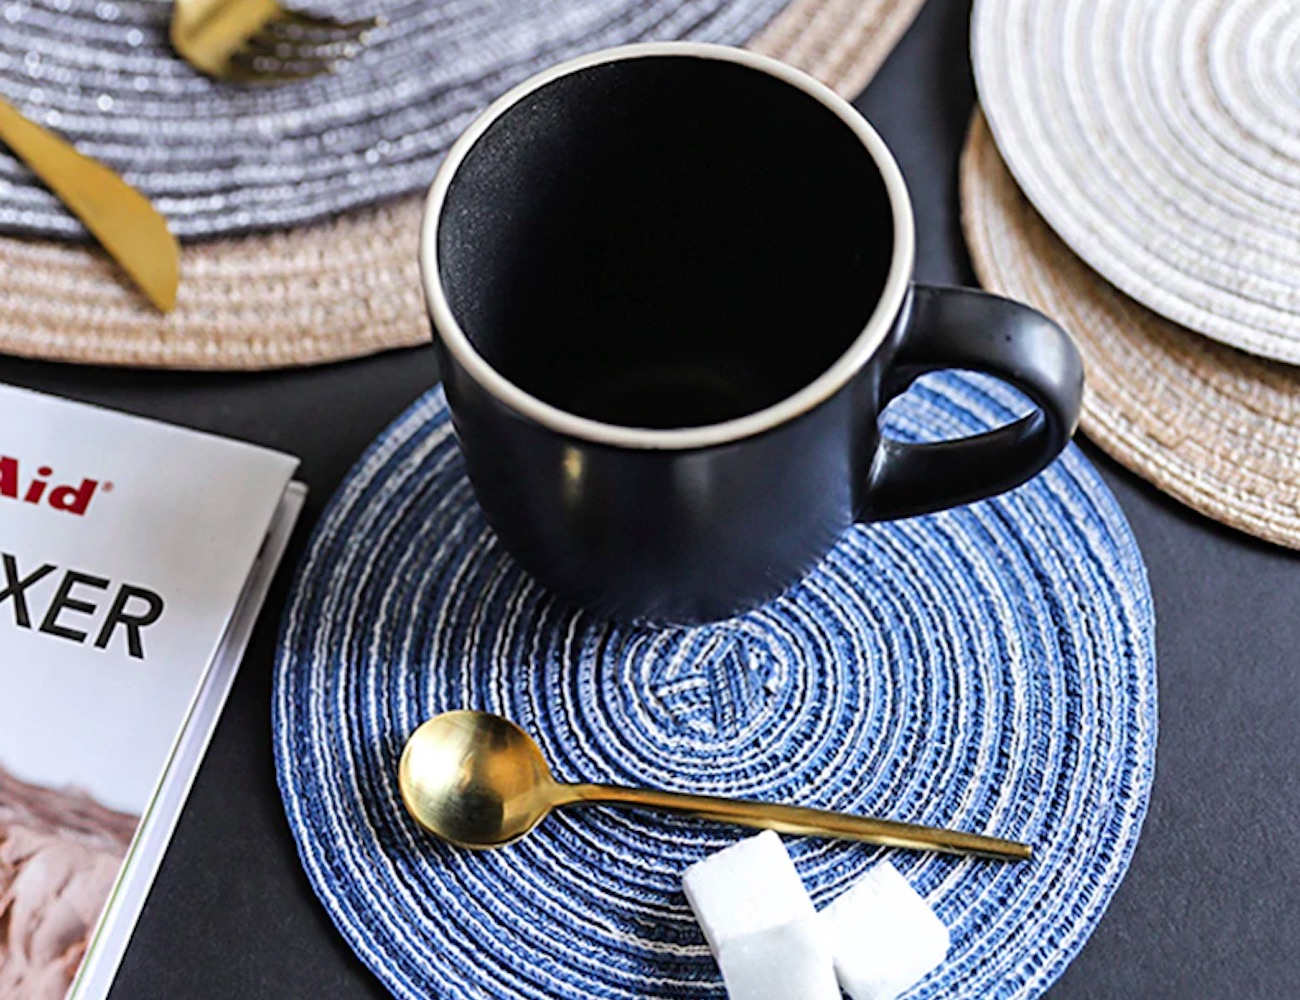 Nordic Style Anti-Slip Placemats combine form and function